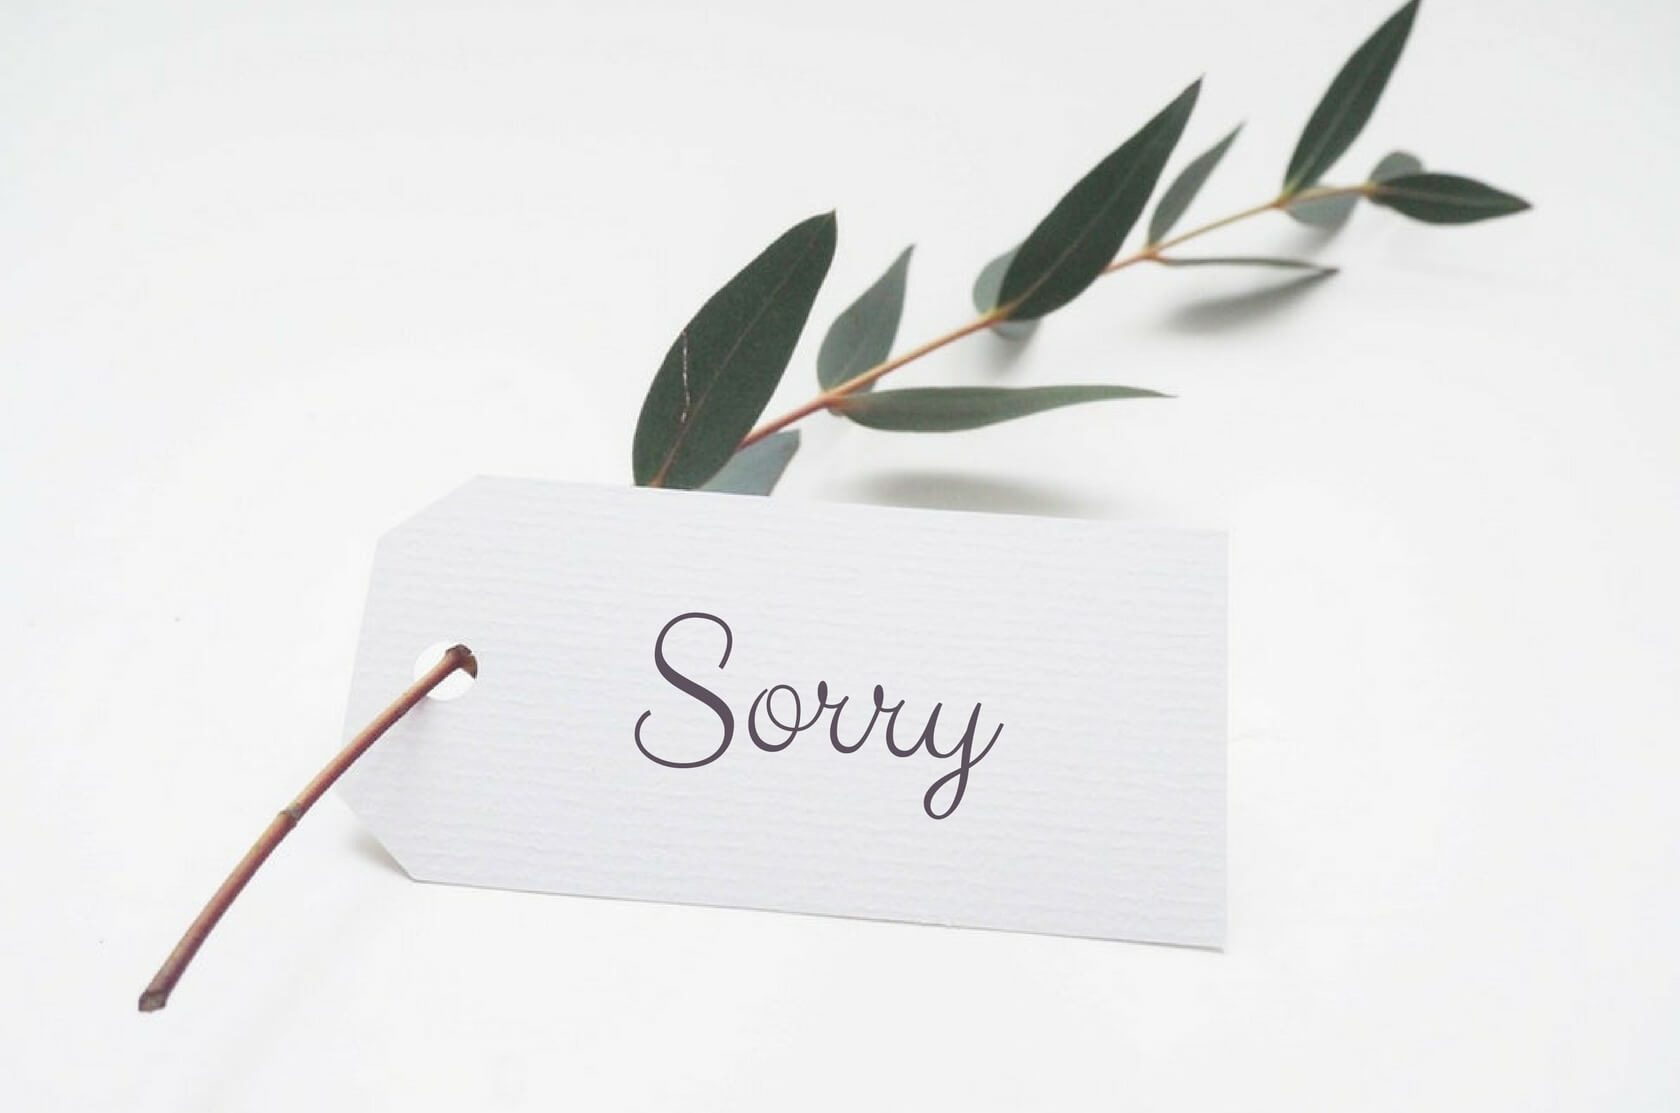 Common English word: Sorry